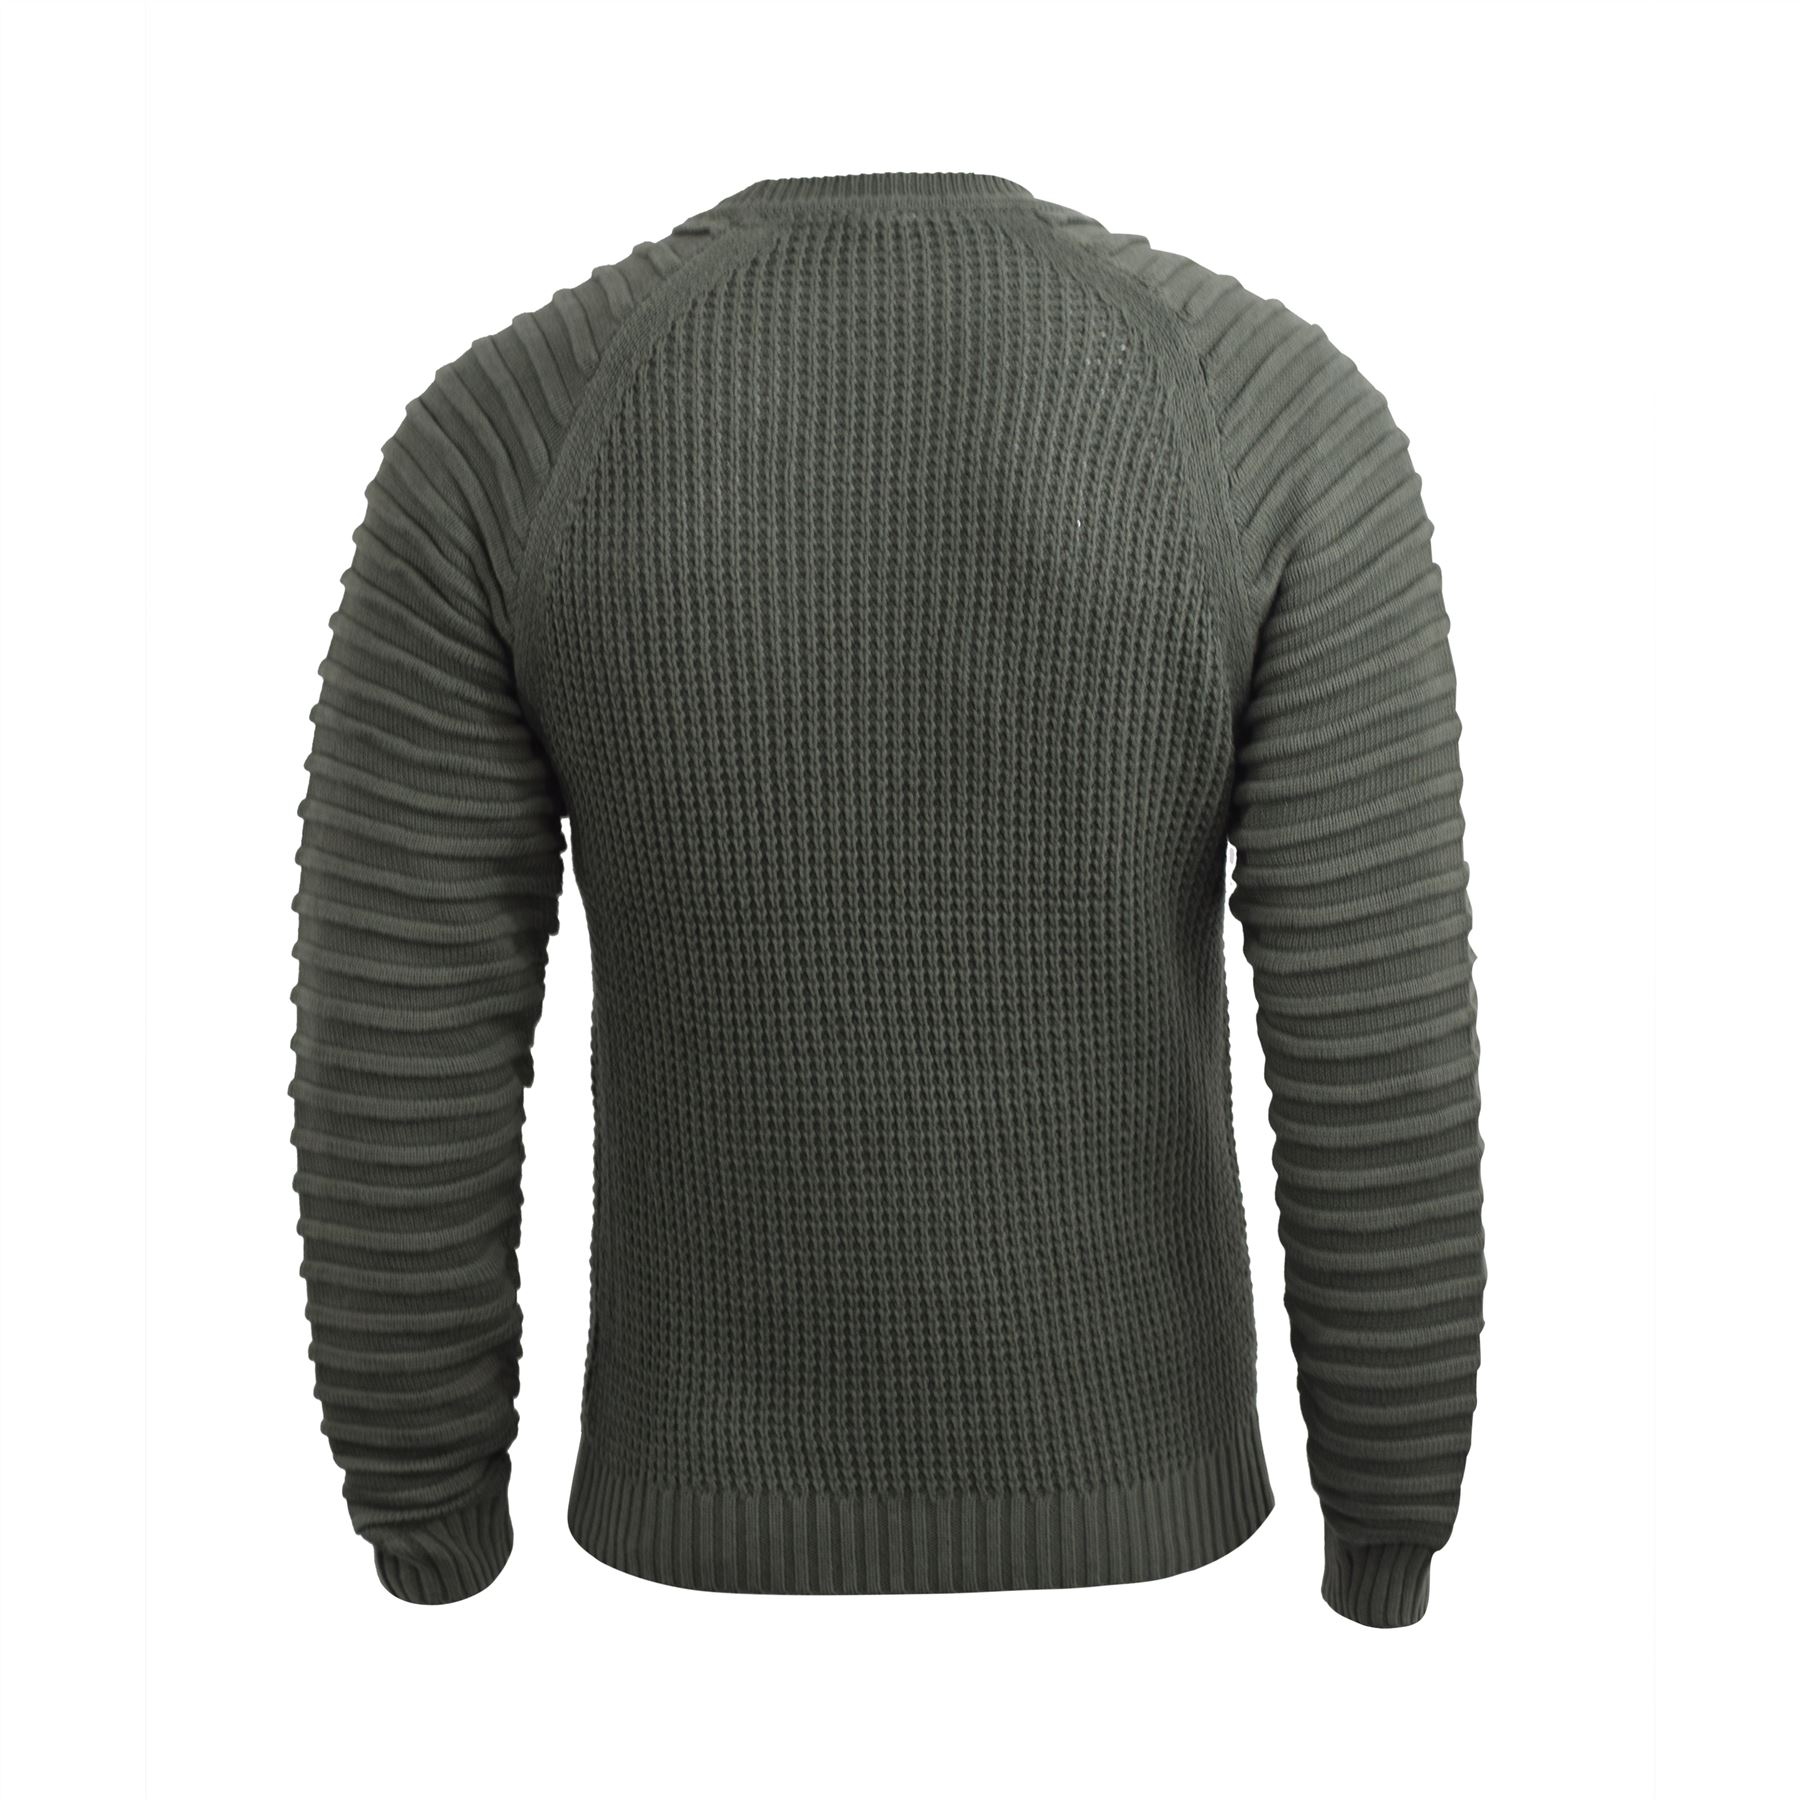 Mens-Knitwear-Crosshatch-Sweater-Top-Pullover-Knitted-Jumper thumbnail 3